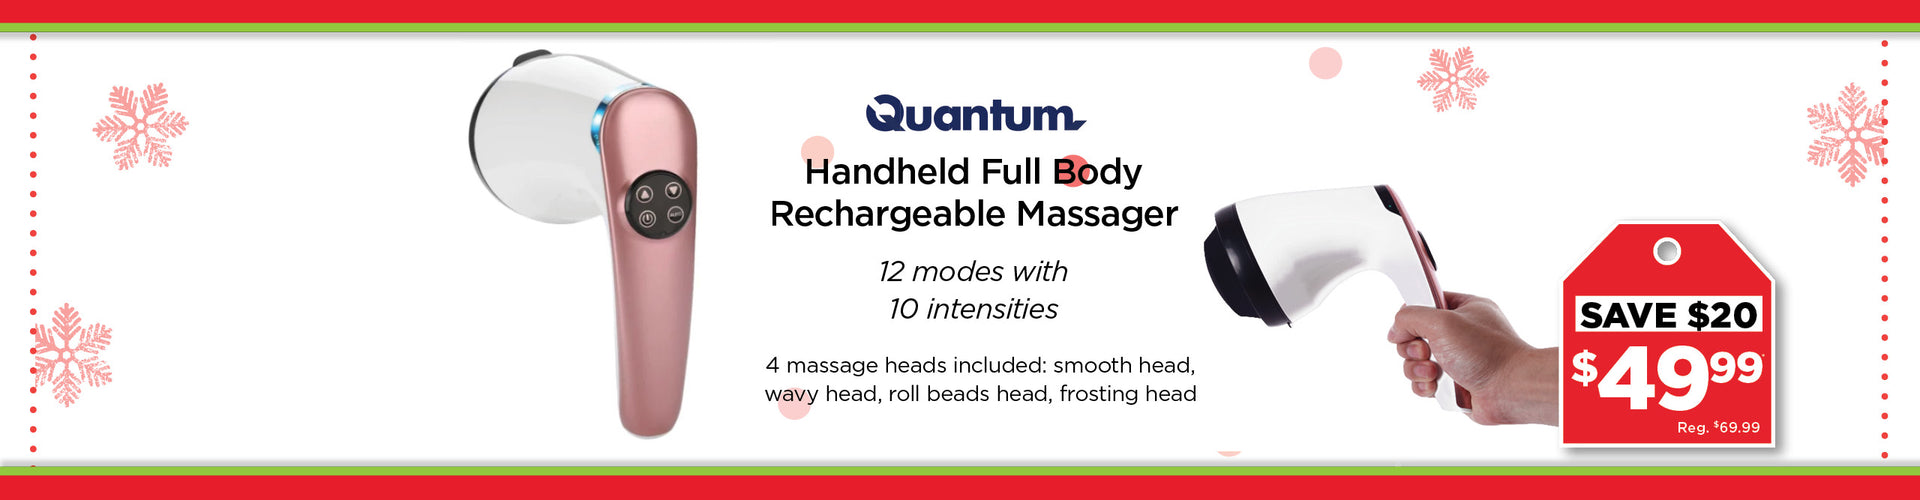 Quantum Handheld Massager